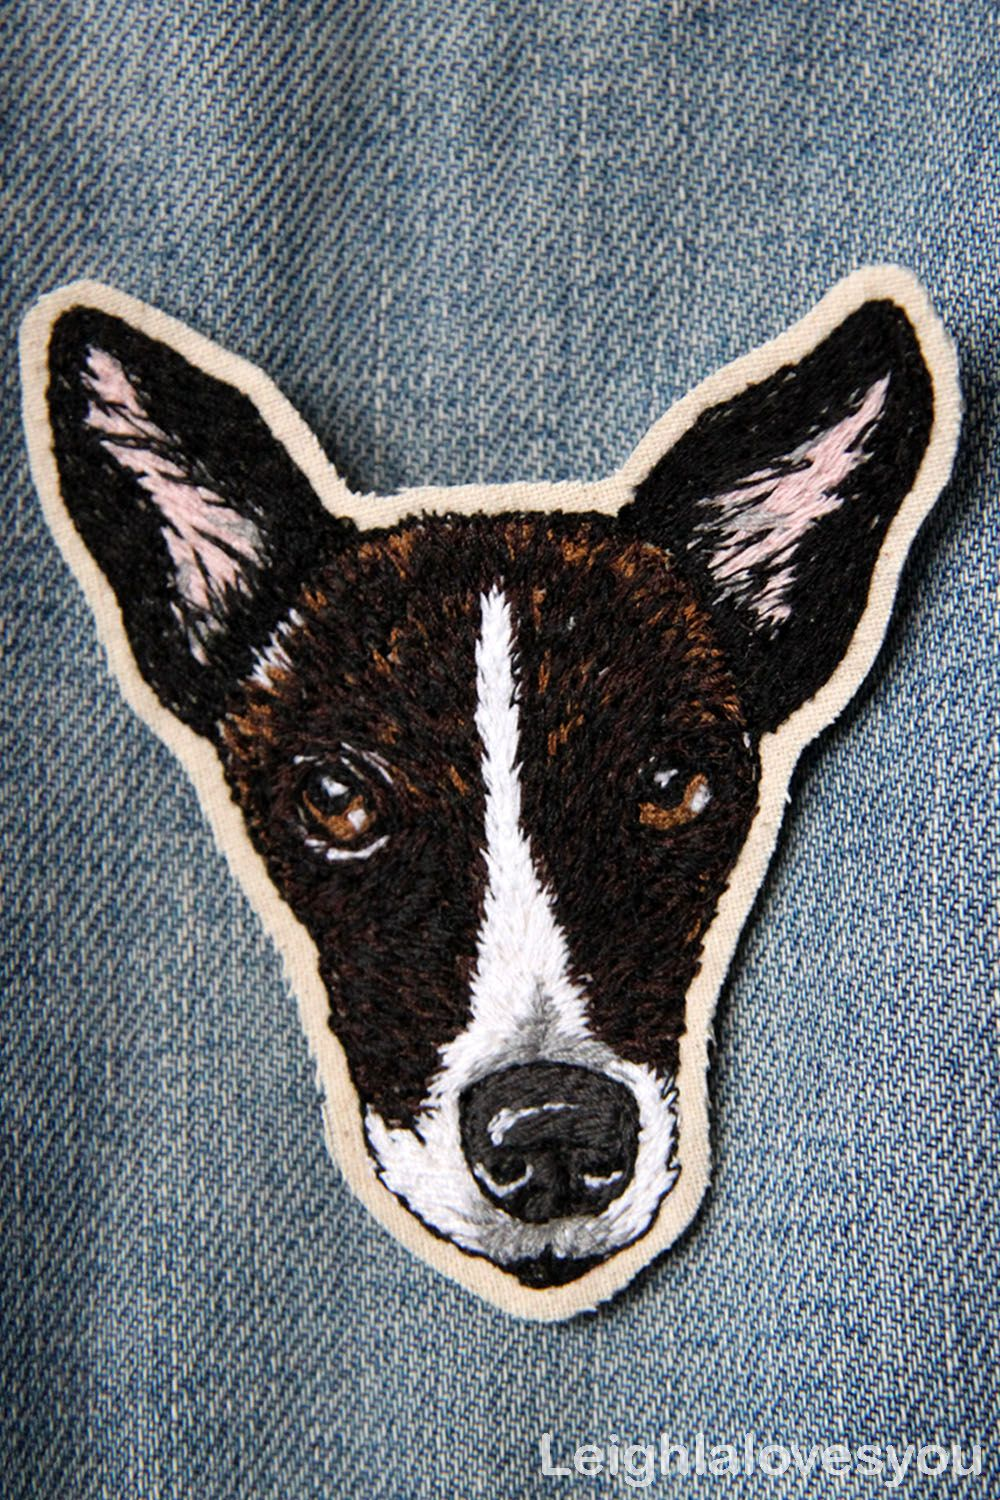 How To Convert A Picture To An Embroidery Pattern